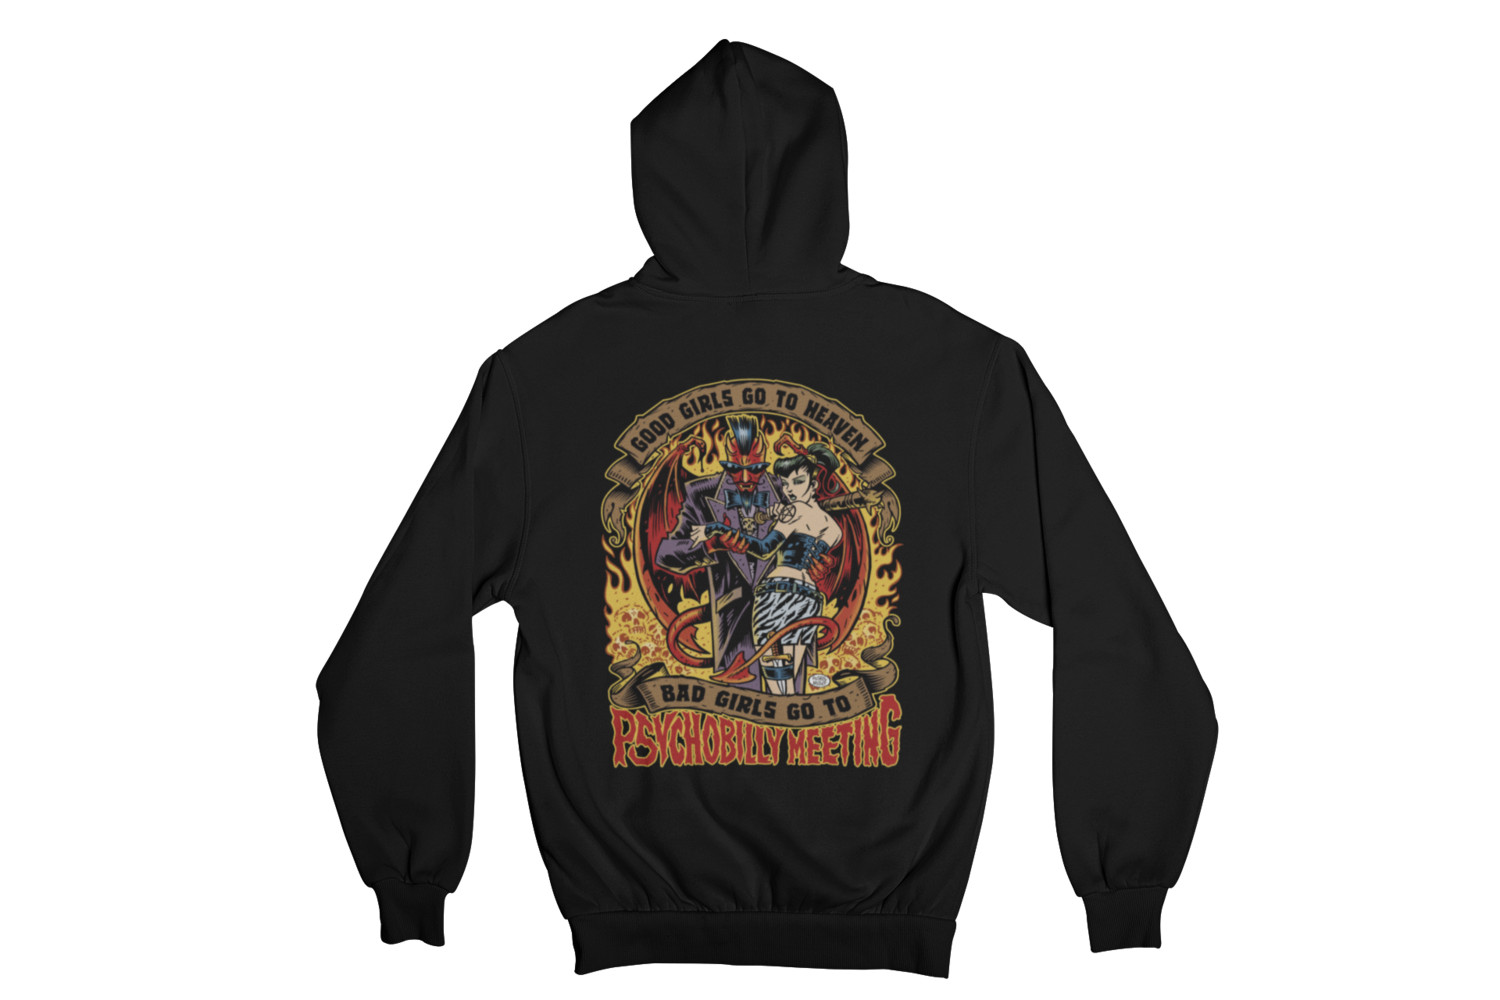 BAD GIRLS GO TO PSYCHOBILLY MEETING HOODIE ZIP for WOMEN by PASKAL